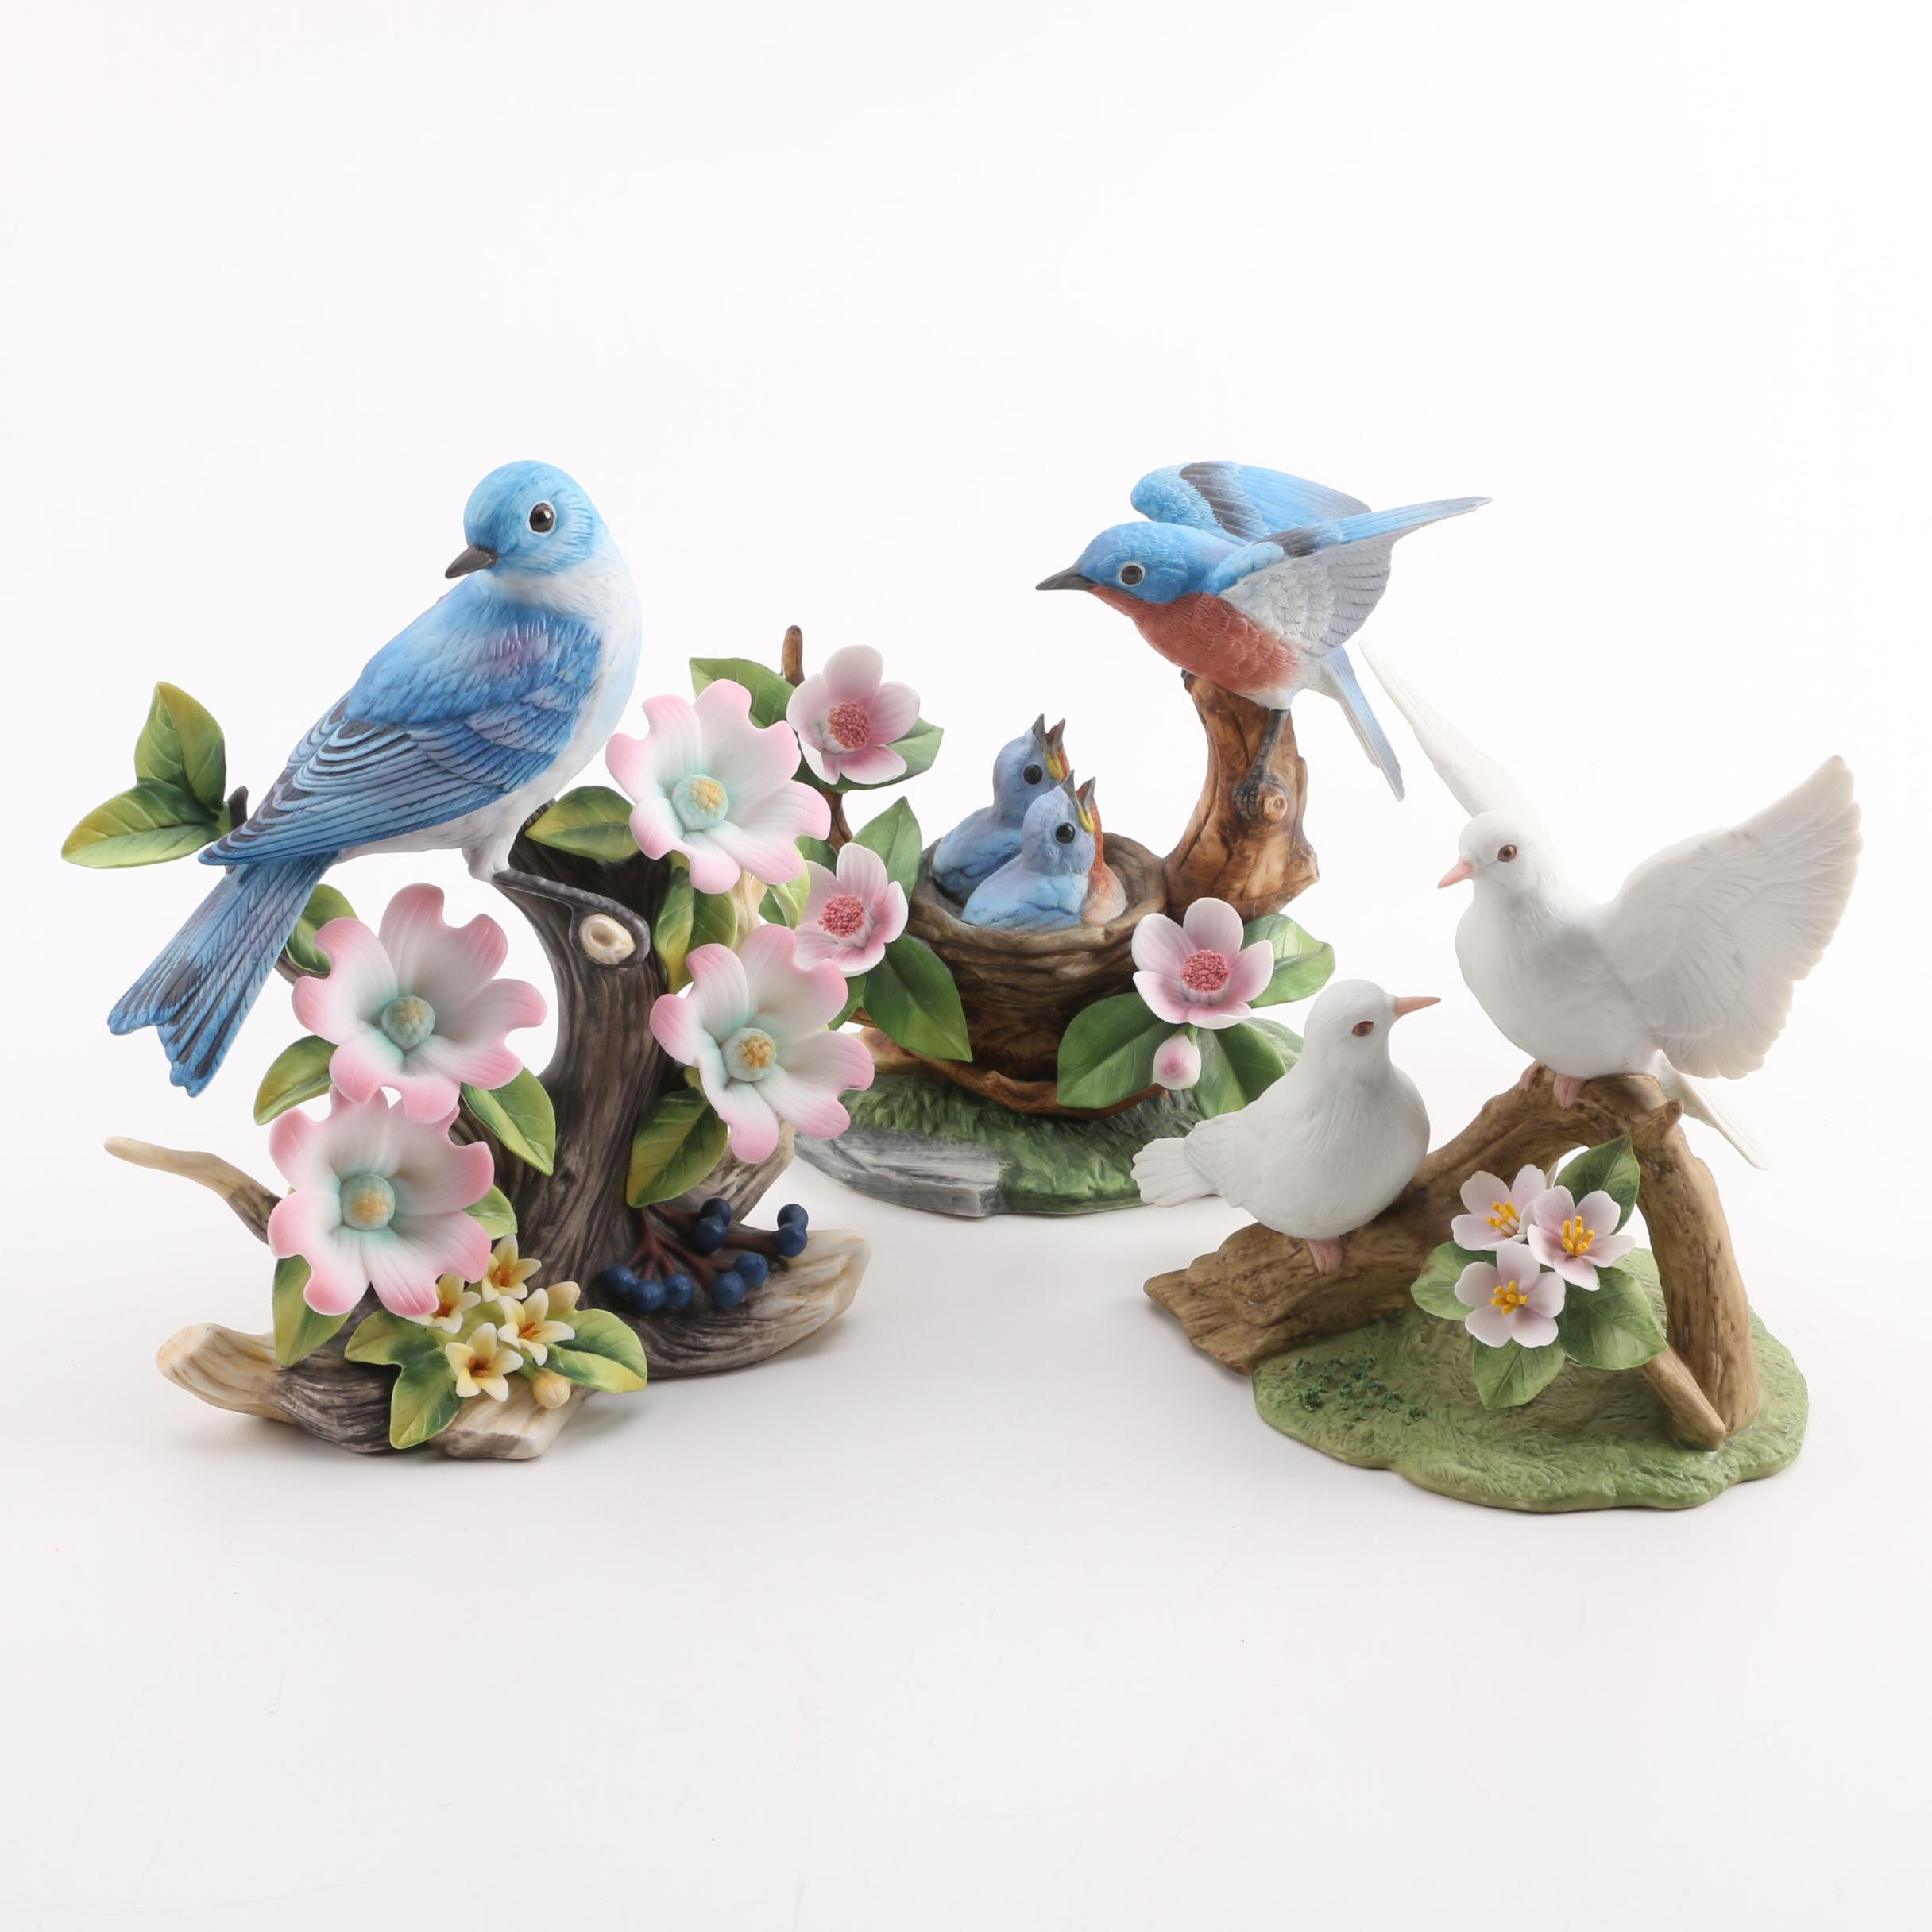 Vintage Andrea by Sadek Porcelain Bird Figurines